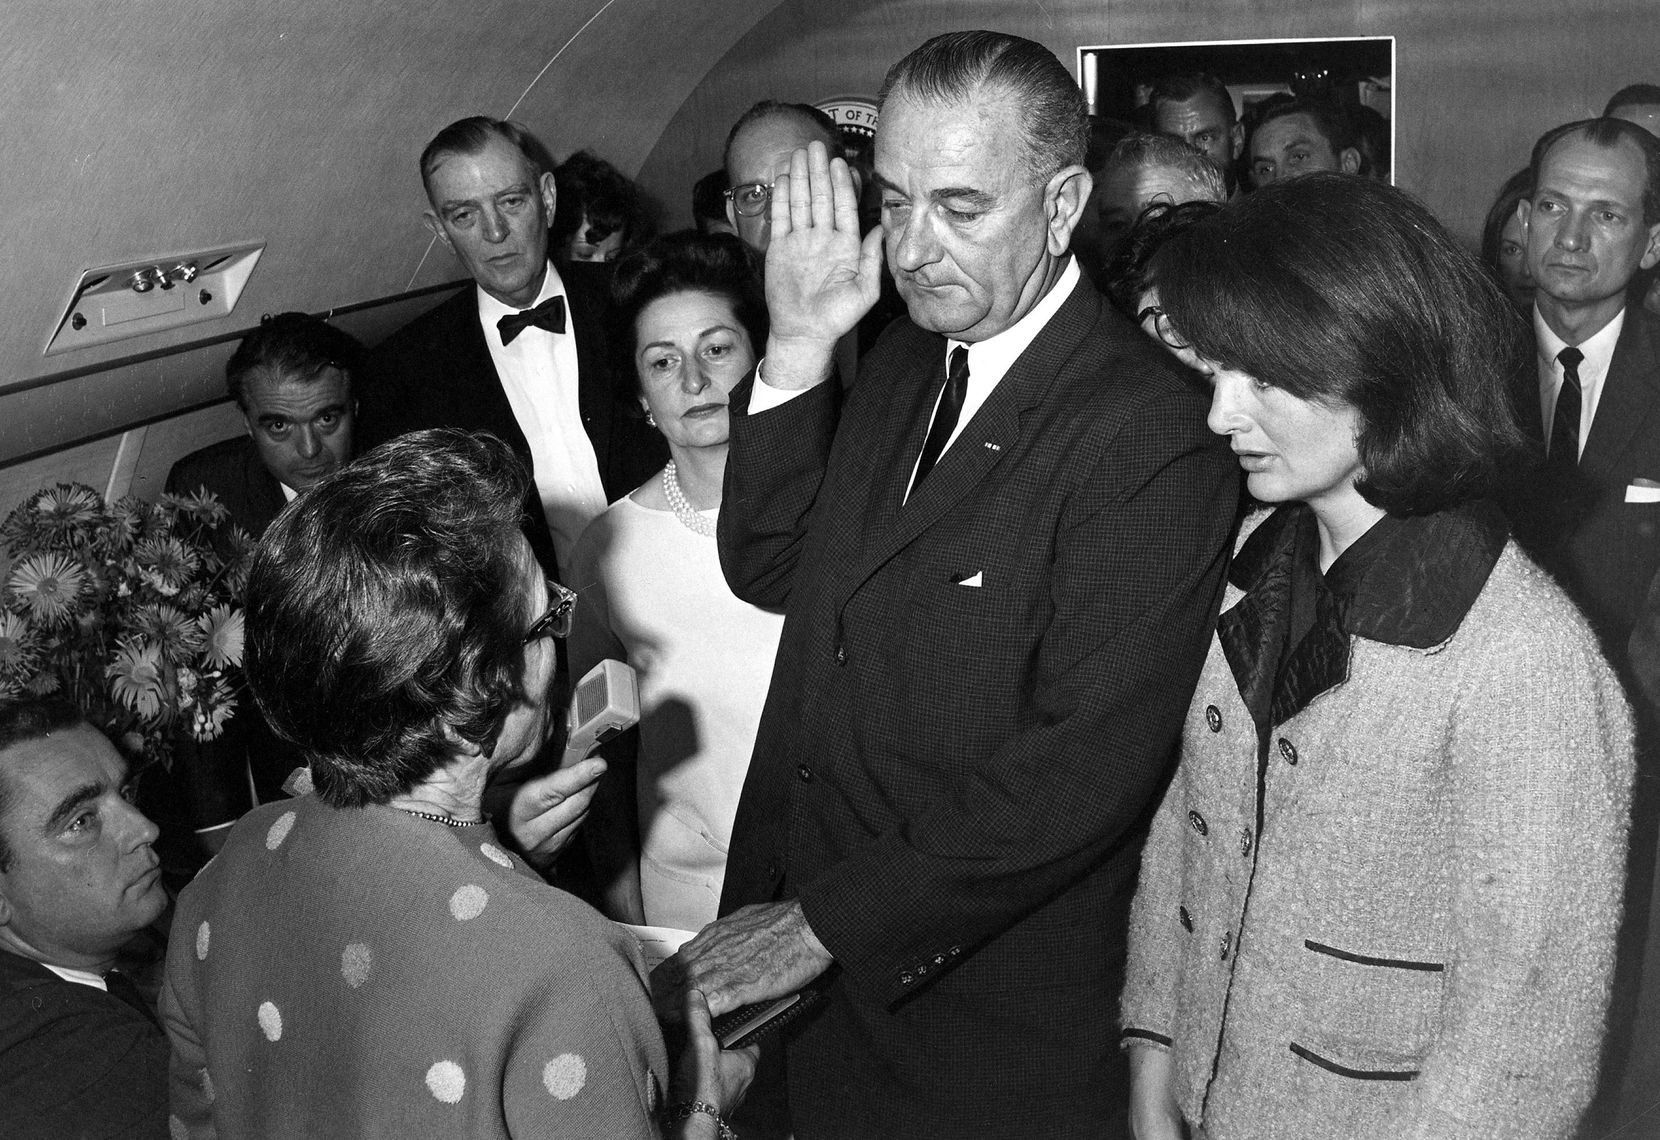 Judge Sarah T. Hughes administered the presidential oath of office to Lyndon Johnson aboard Air Force One at Love Field after John F. Kennedy's death. Johnson's wife, Lady Bird (background), and the slain president's widow, Jackie Kennedy, were among the witnesses.